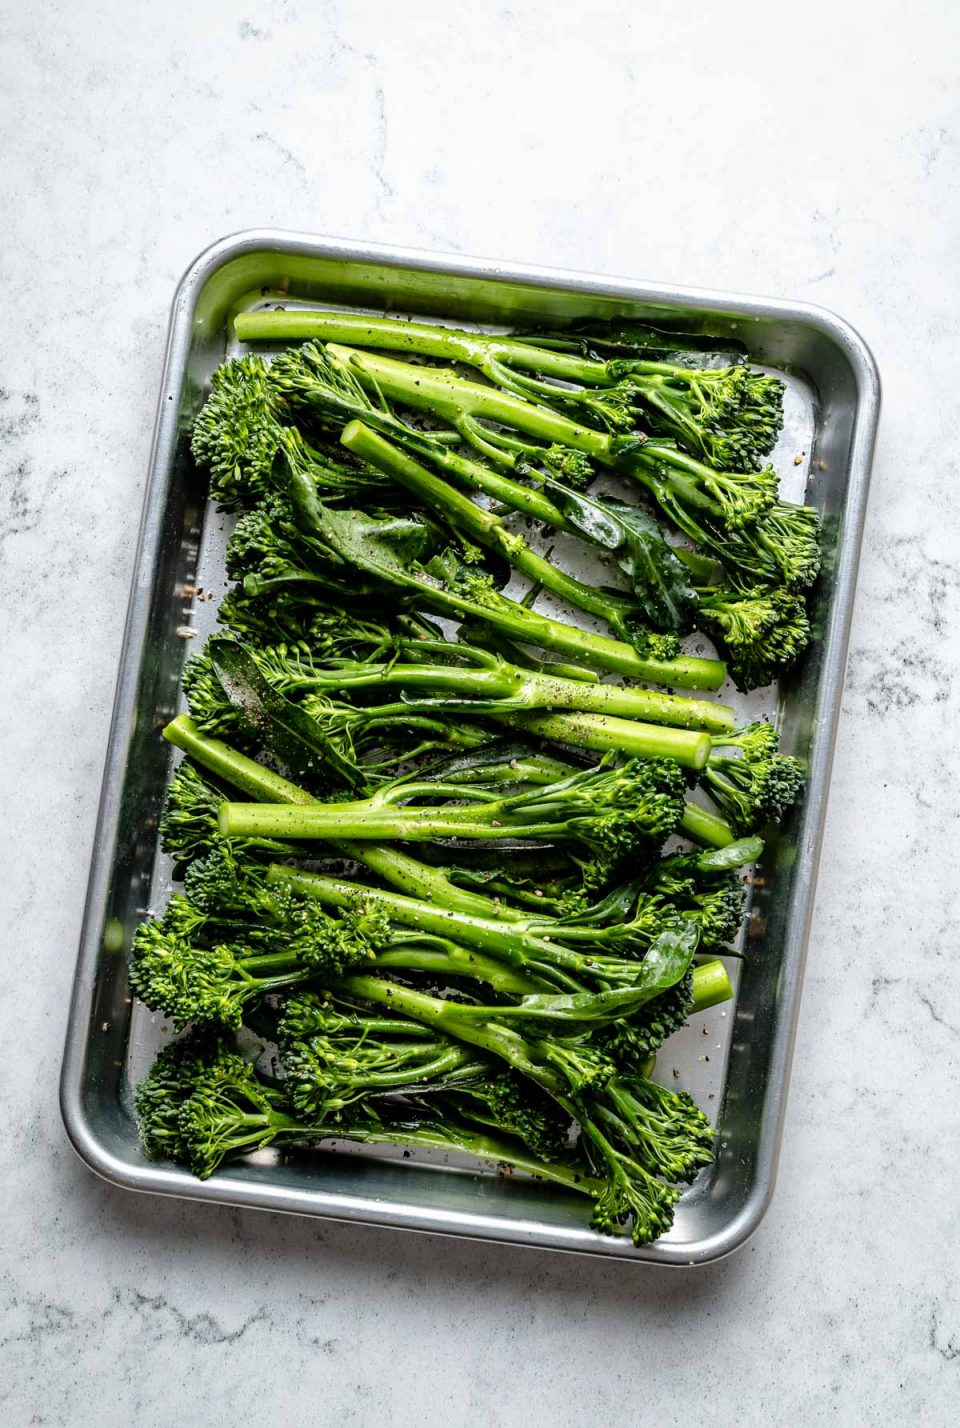 Multiple pieces of fresh & uncooked broccolini stalks seasoned with oil, kosher salt, & ground black pepper lie on an aluminum baking sheet. The baking sheet sits on top of a white & gray marble surface.